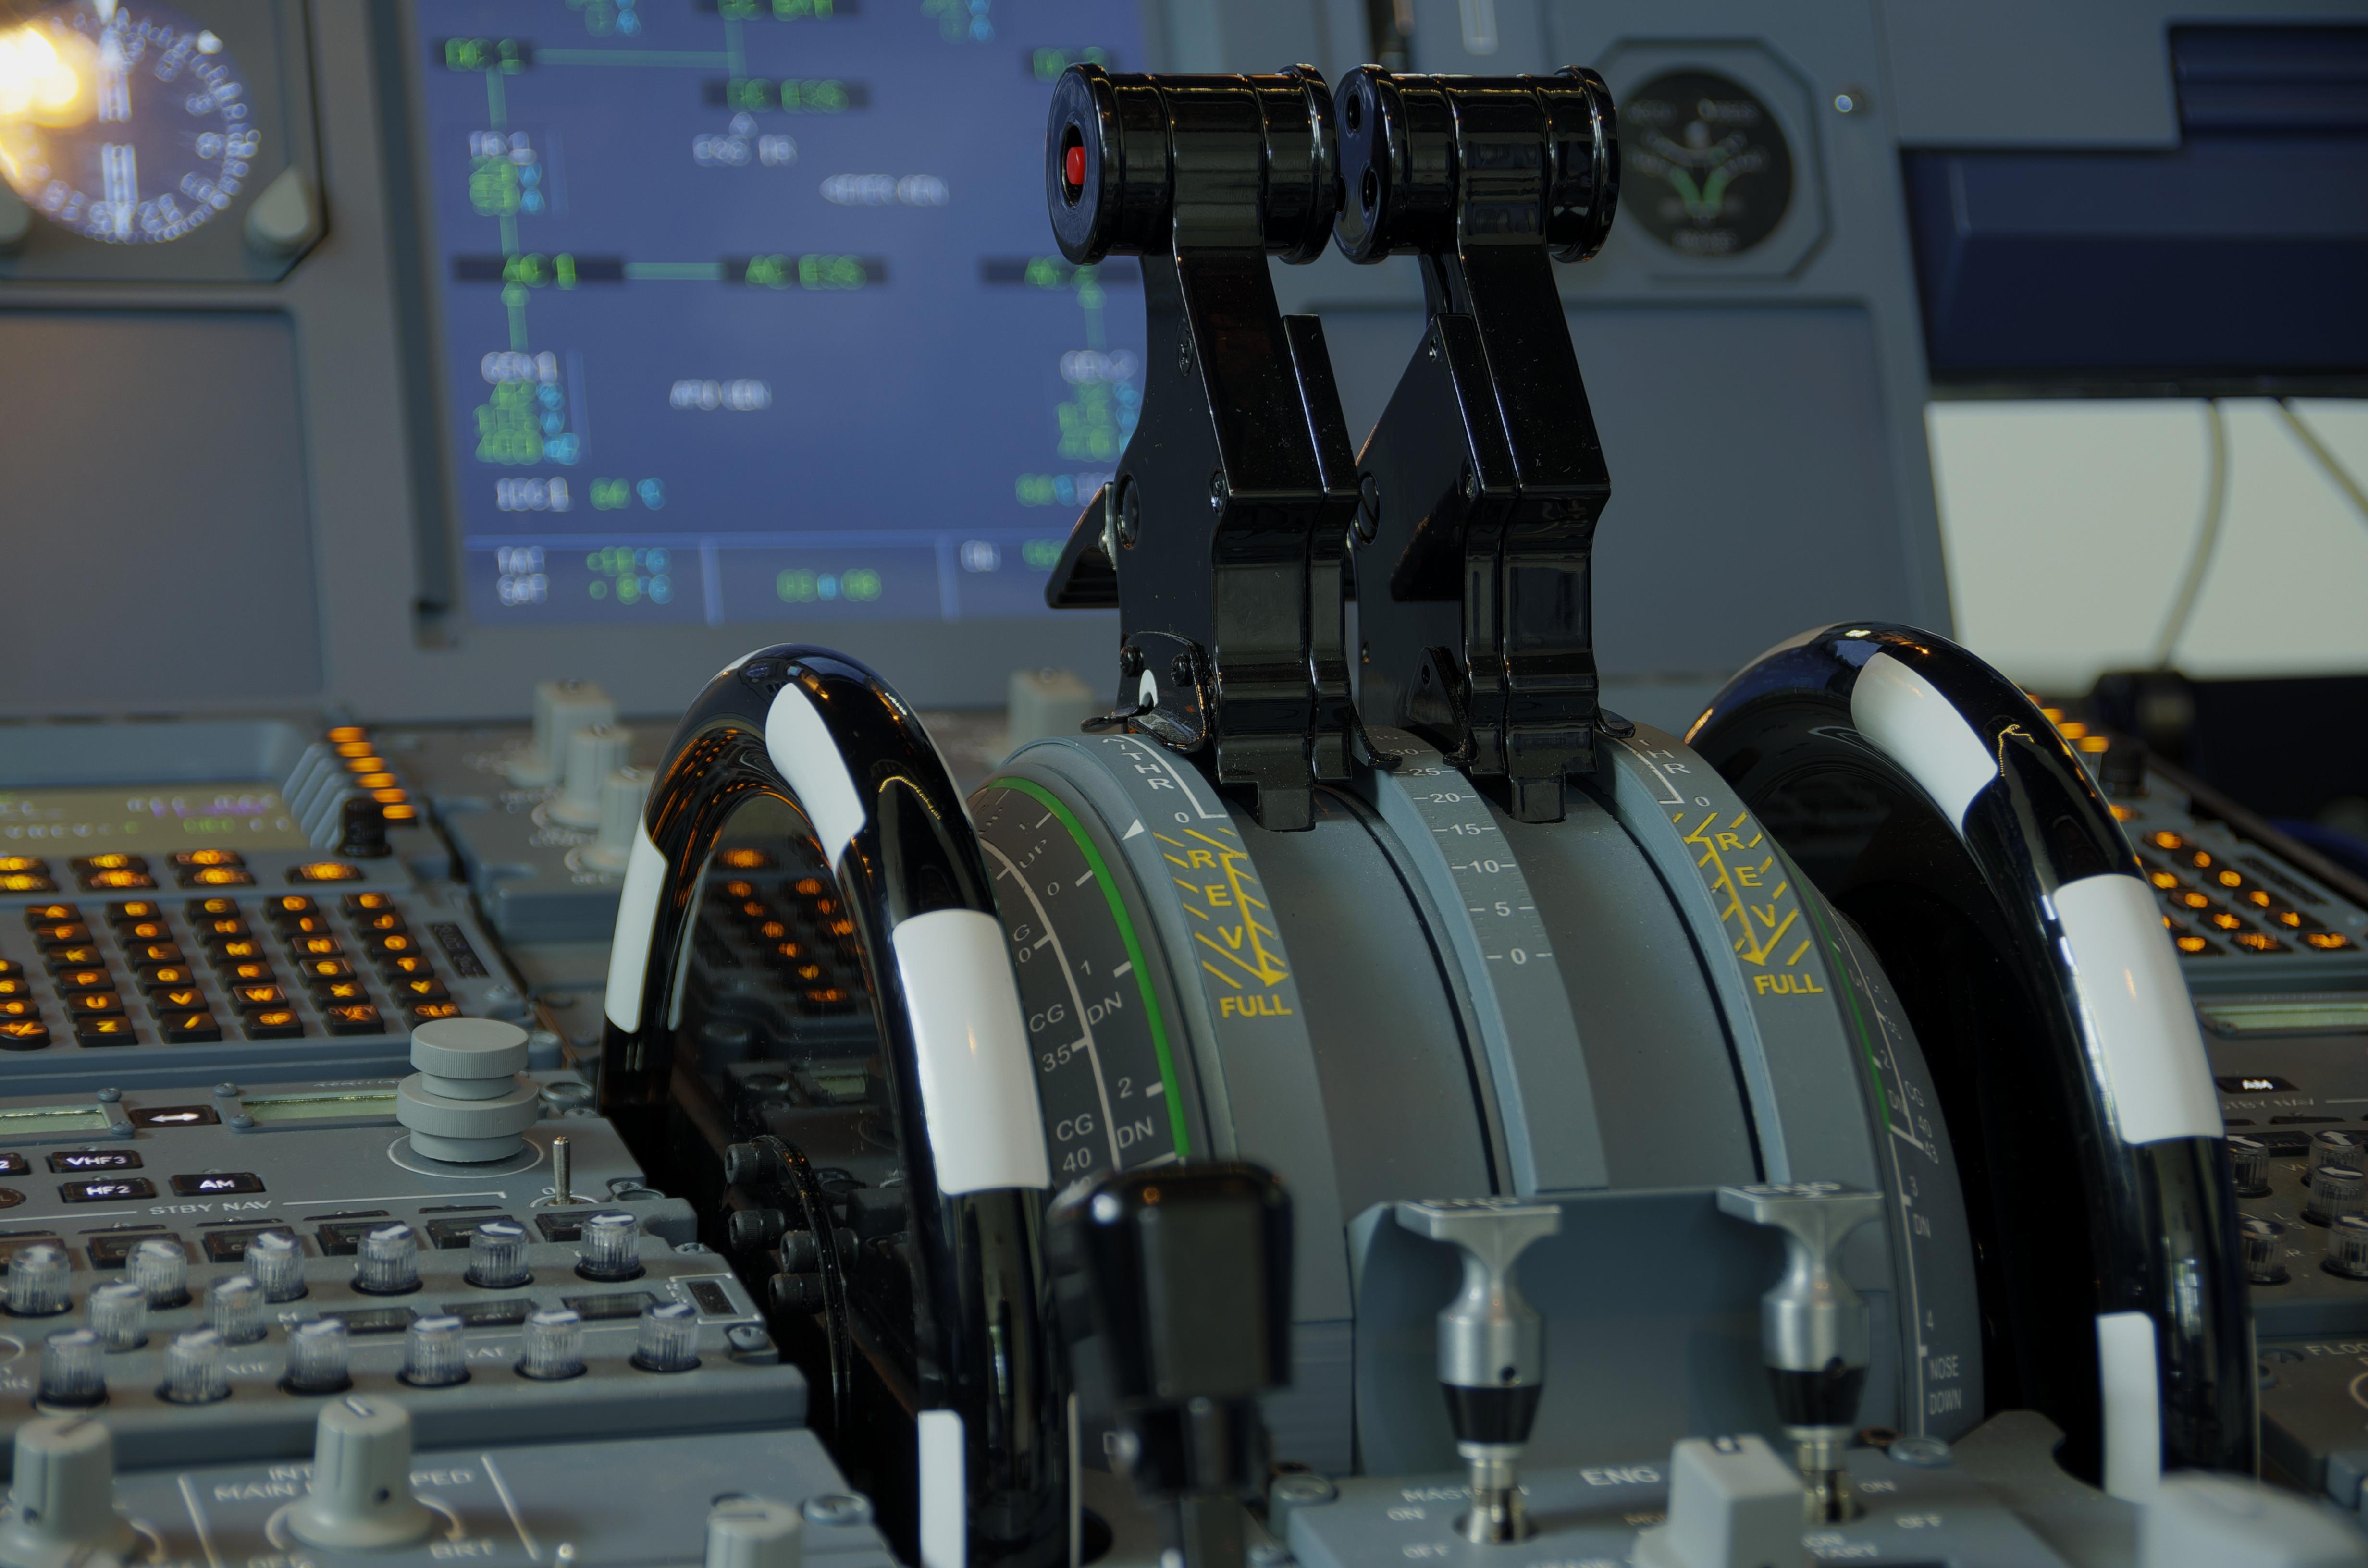 ECA Group supplies again to Wisesoft its A320 flight training solution